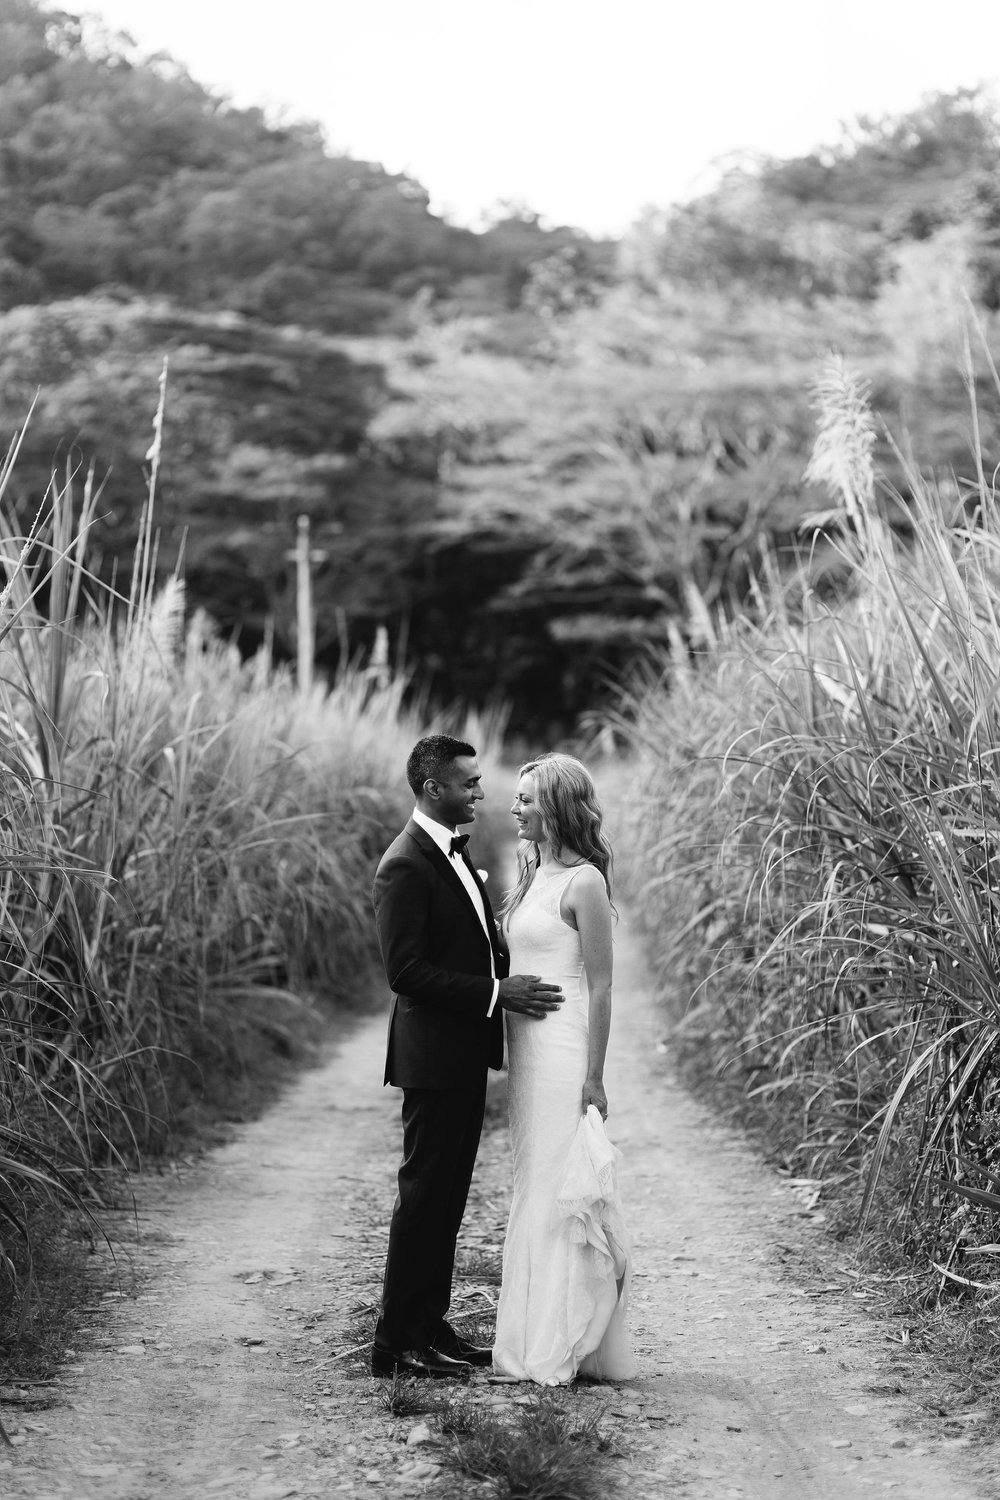 wedding_photography_port_douglas_0171-min.jpg